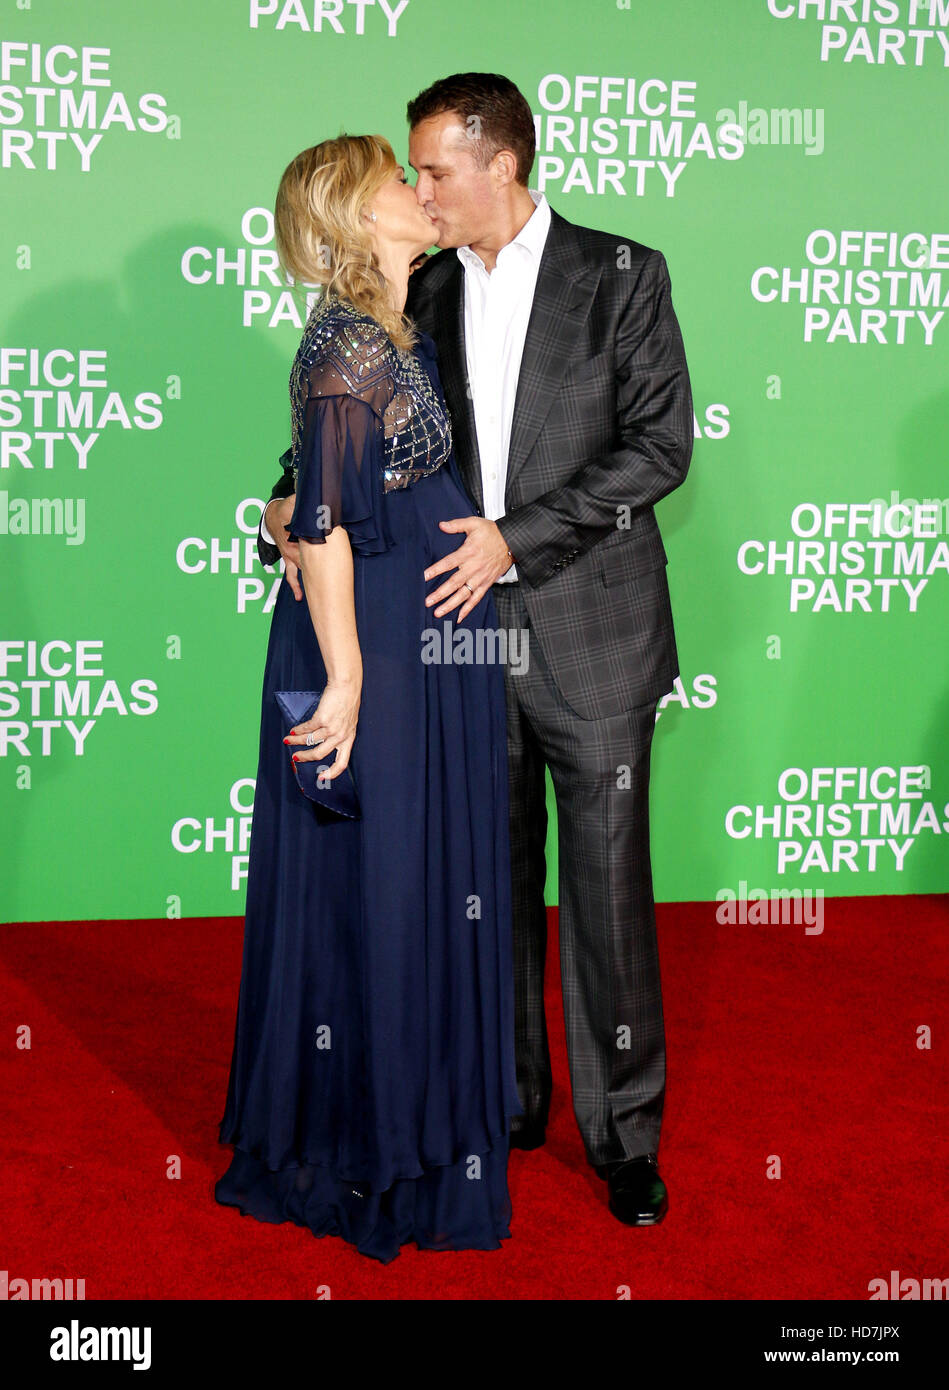 88ba6ee07d637 Scott Stuber and Molly Sims at the Los Angeles premiere of 'Office  Christmas Party'